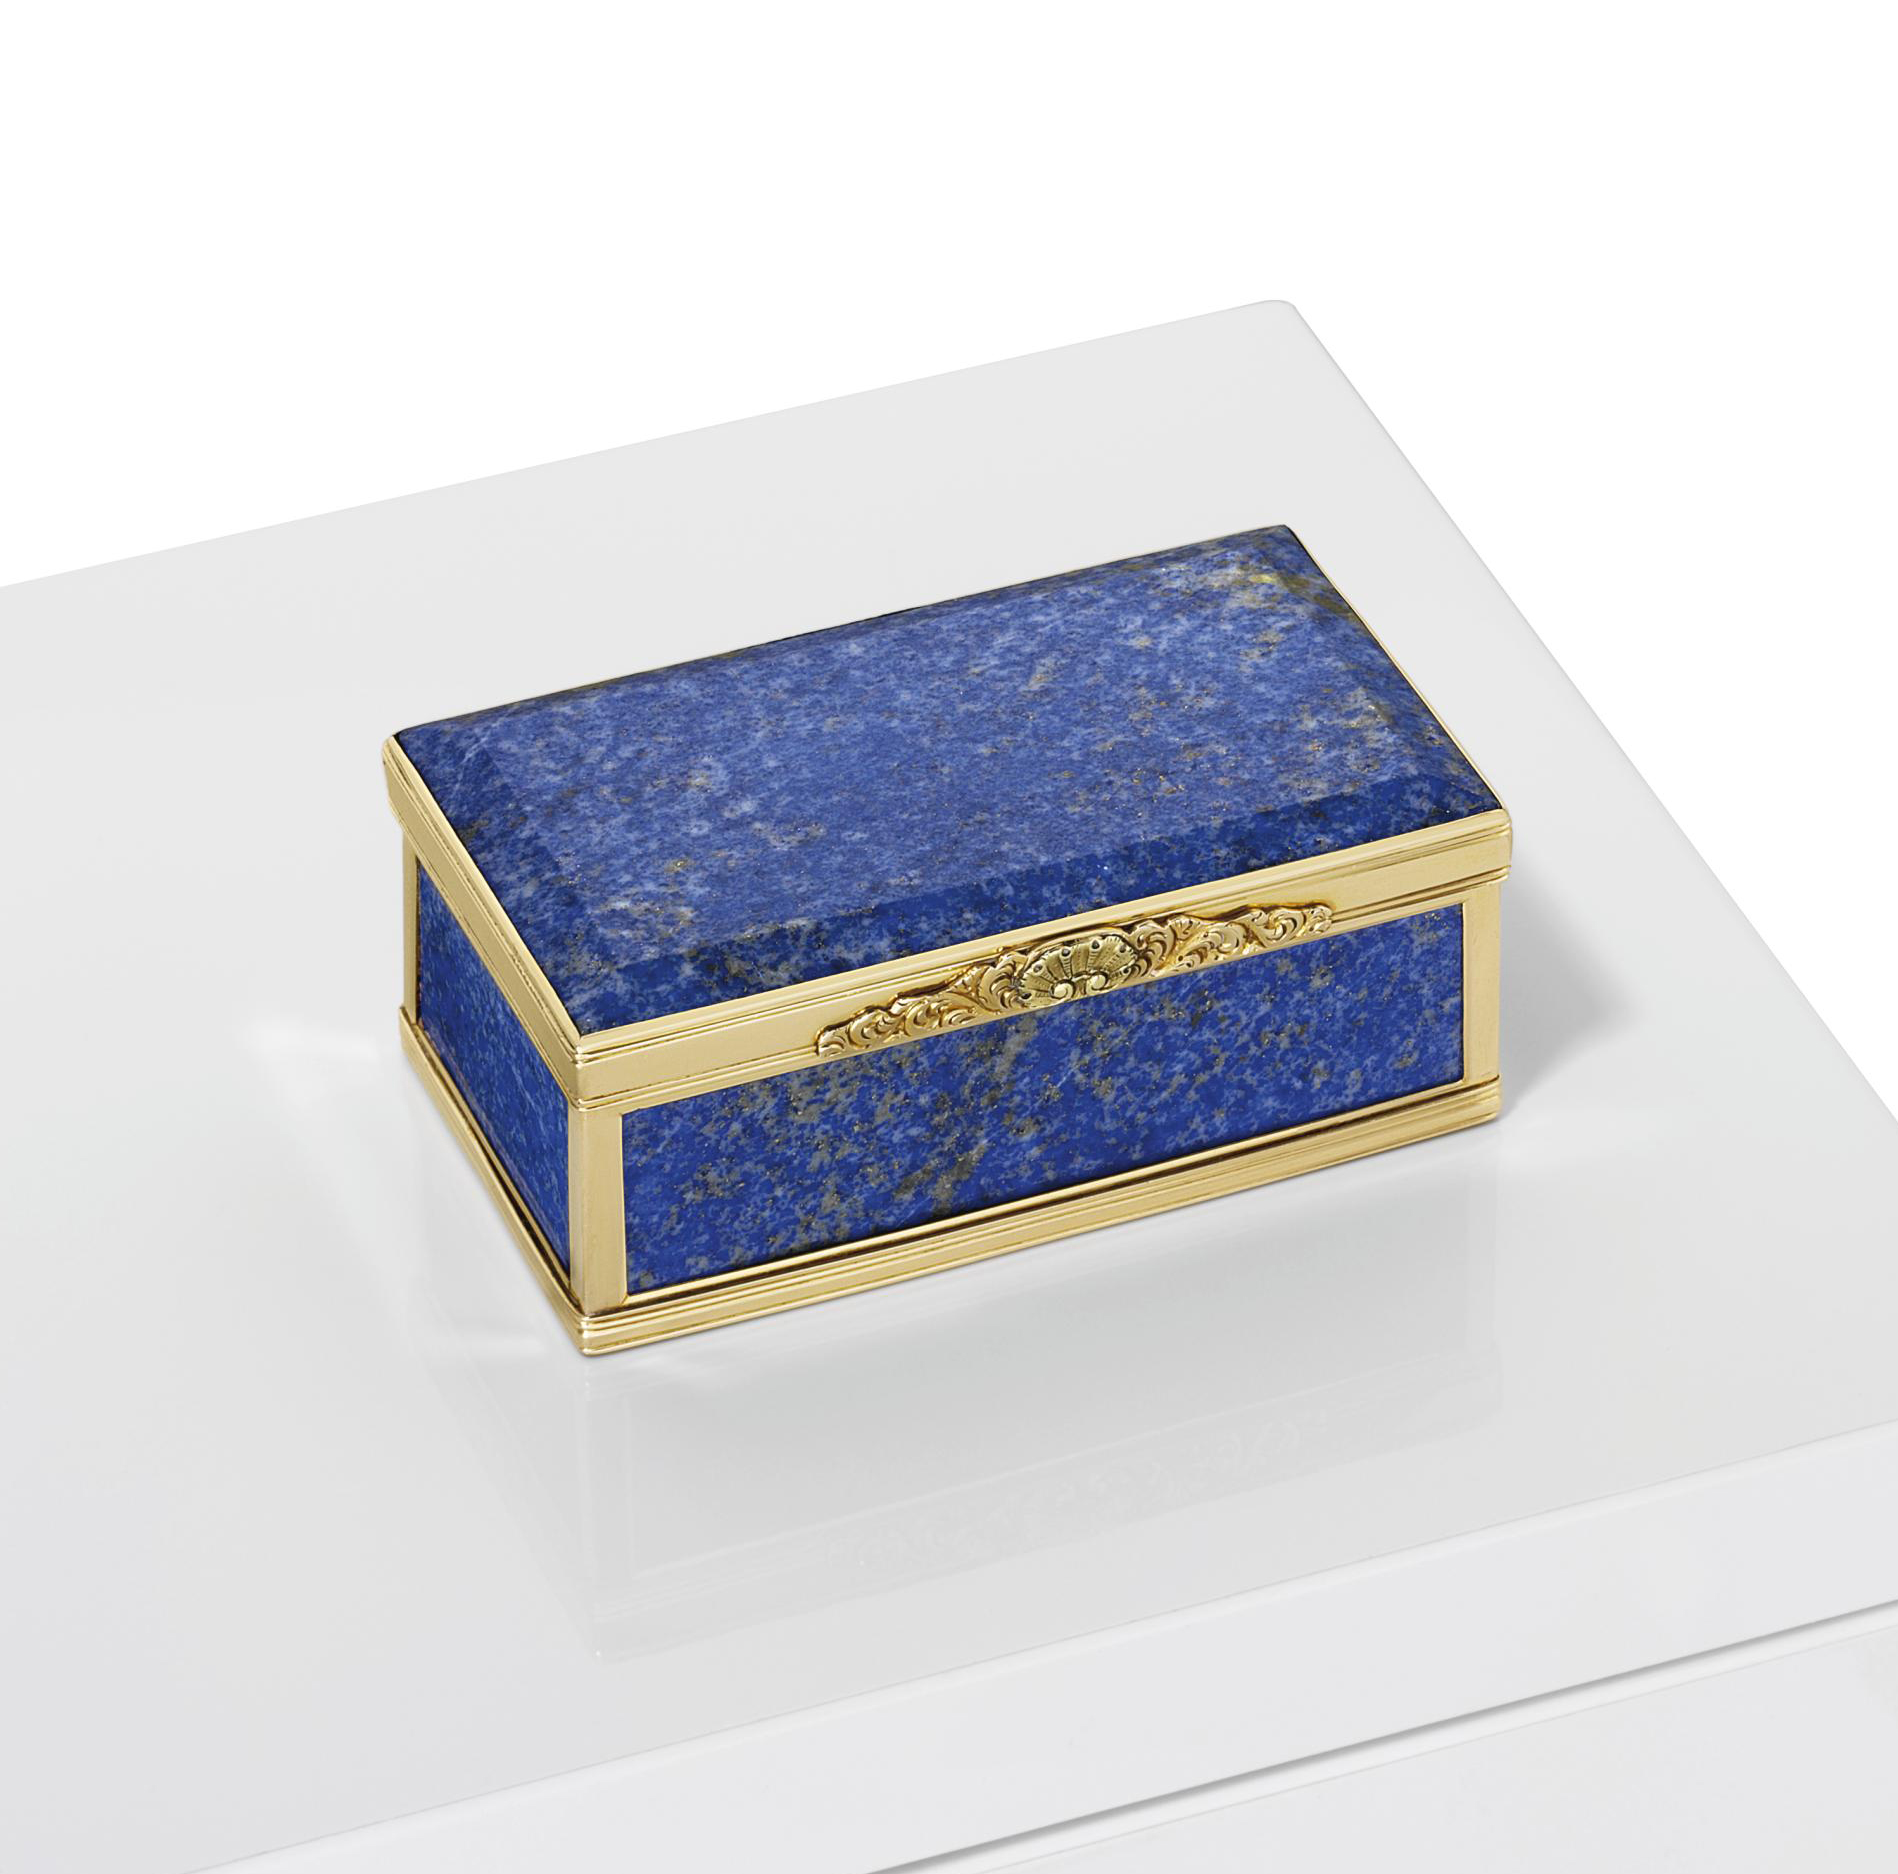 A REGENCY GOLD-MOUNTED HARDSTONE SNUFF-BOX